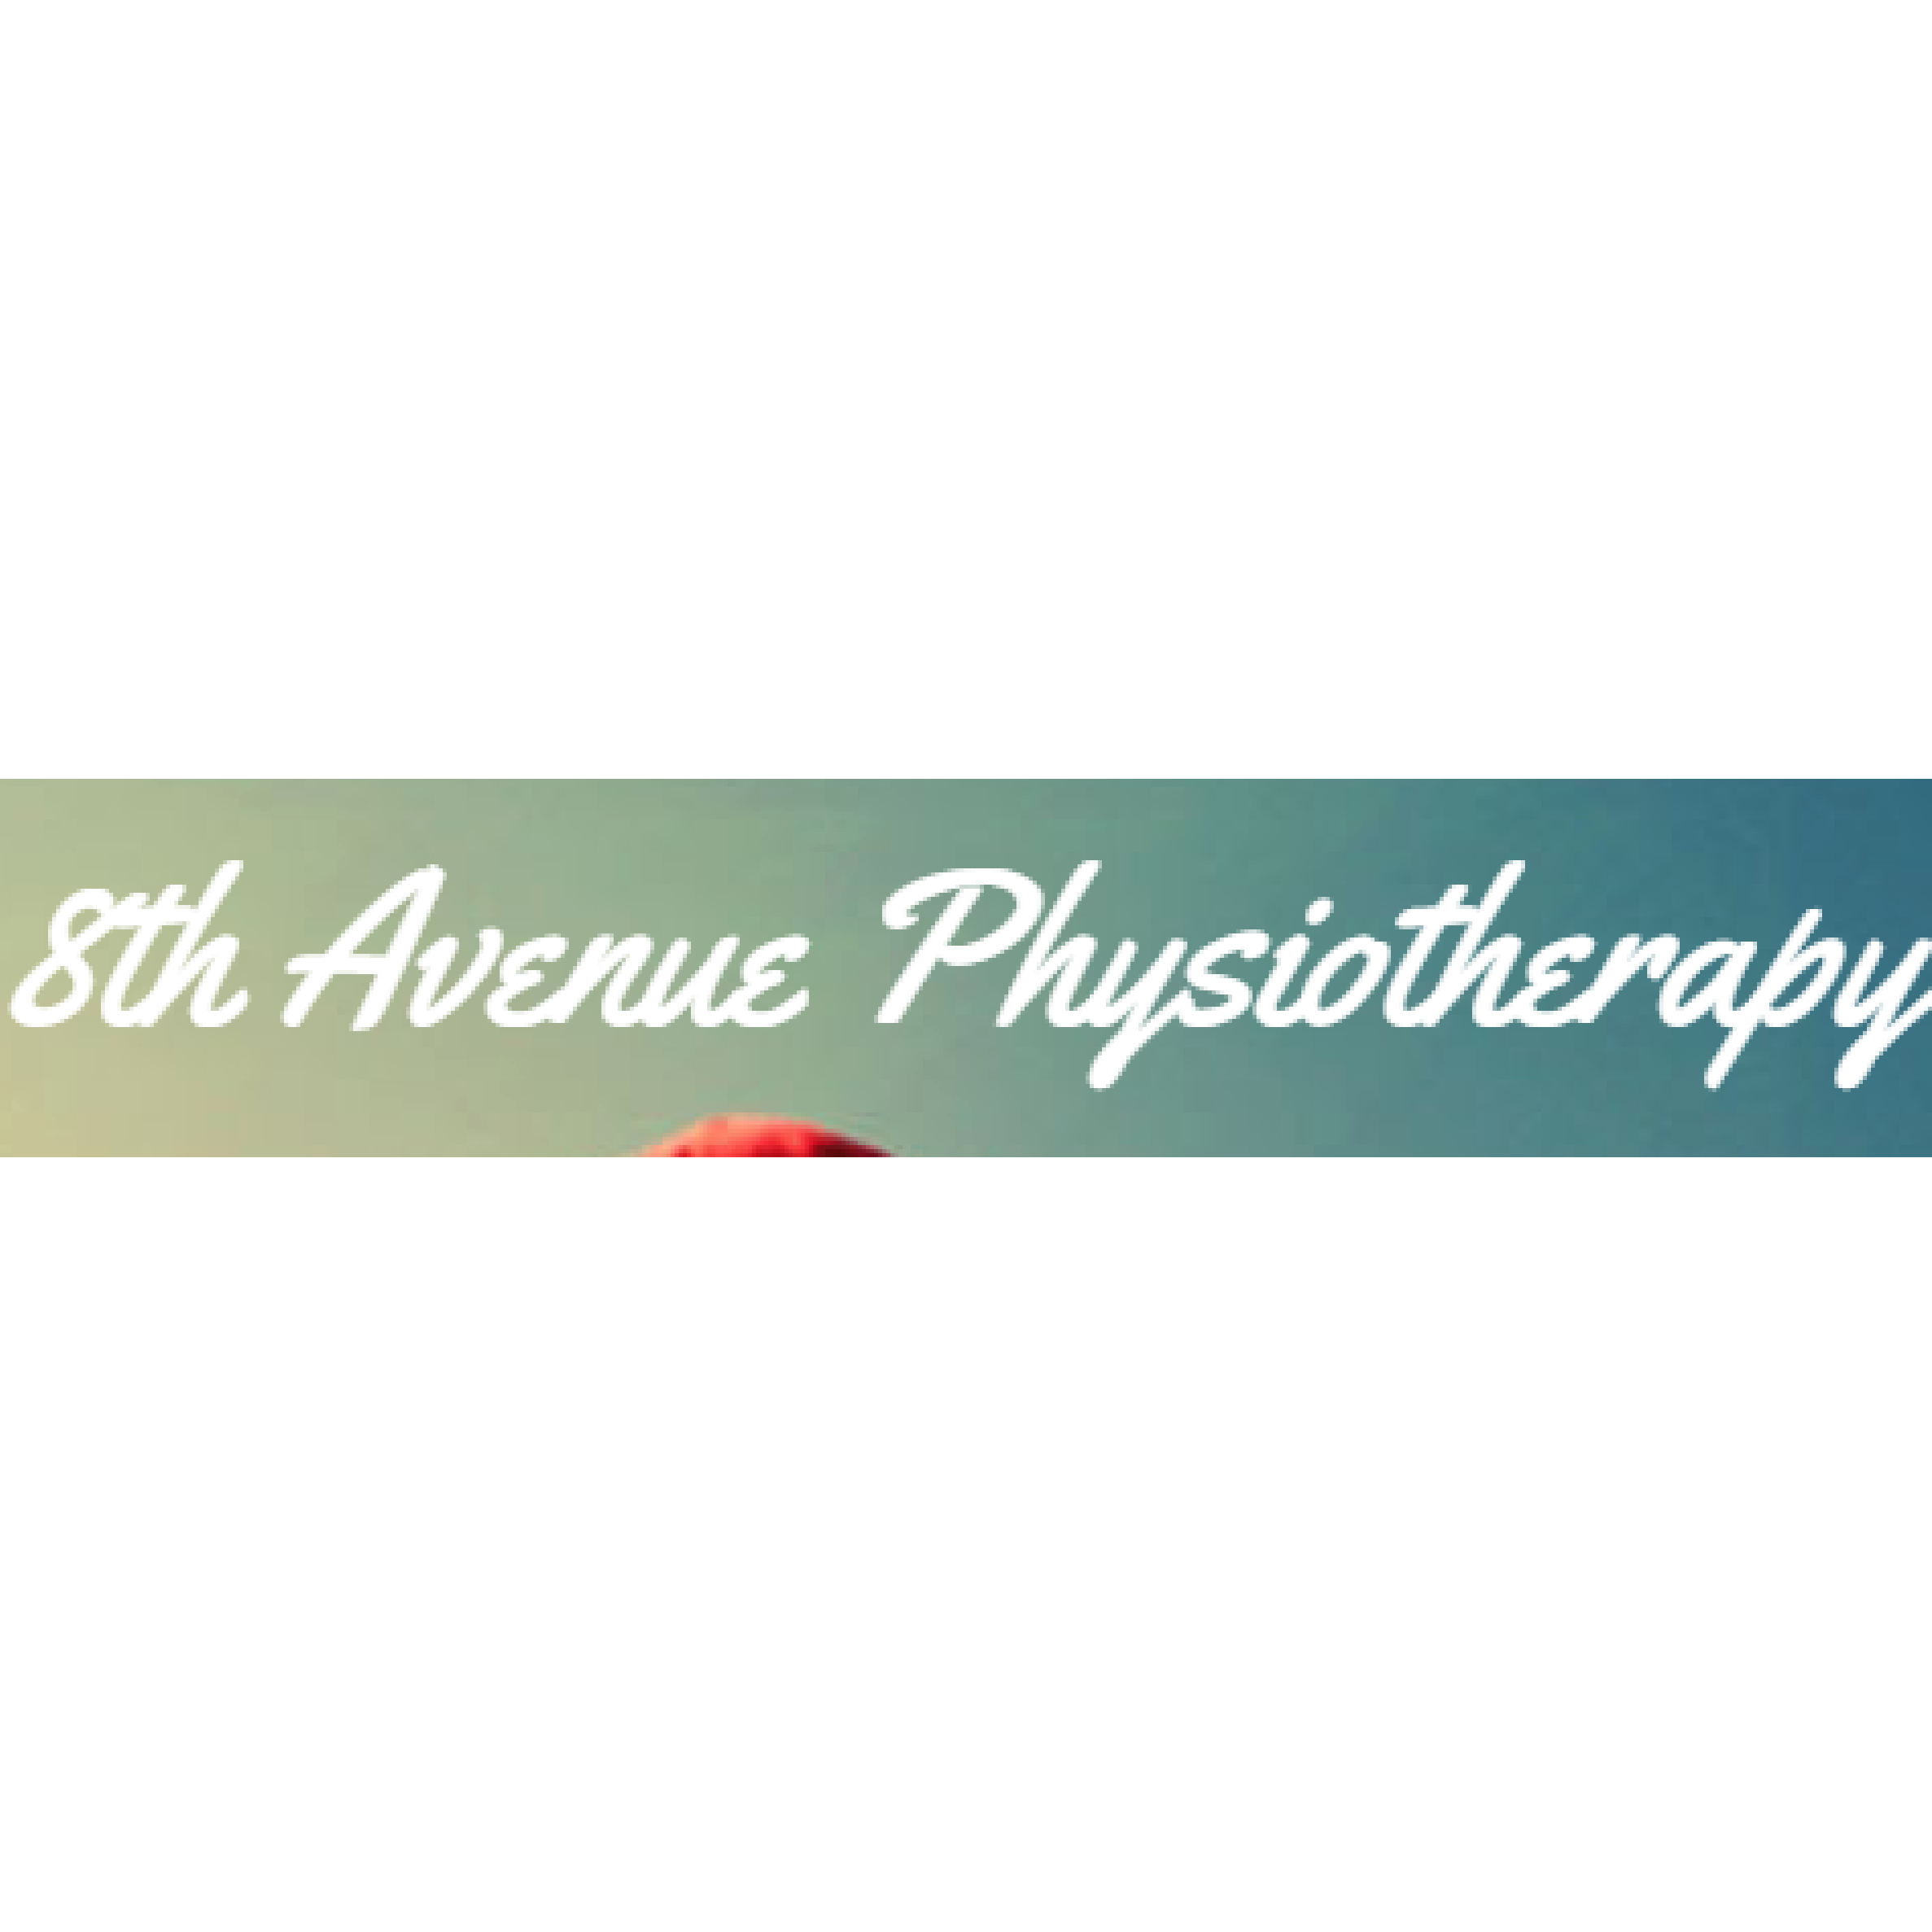 8th Avenue Palm Beach Physiotherapy & Sports Injury Clinic